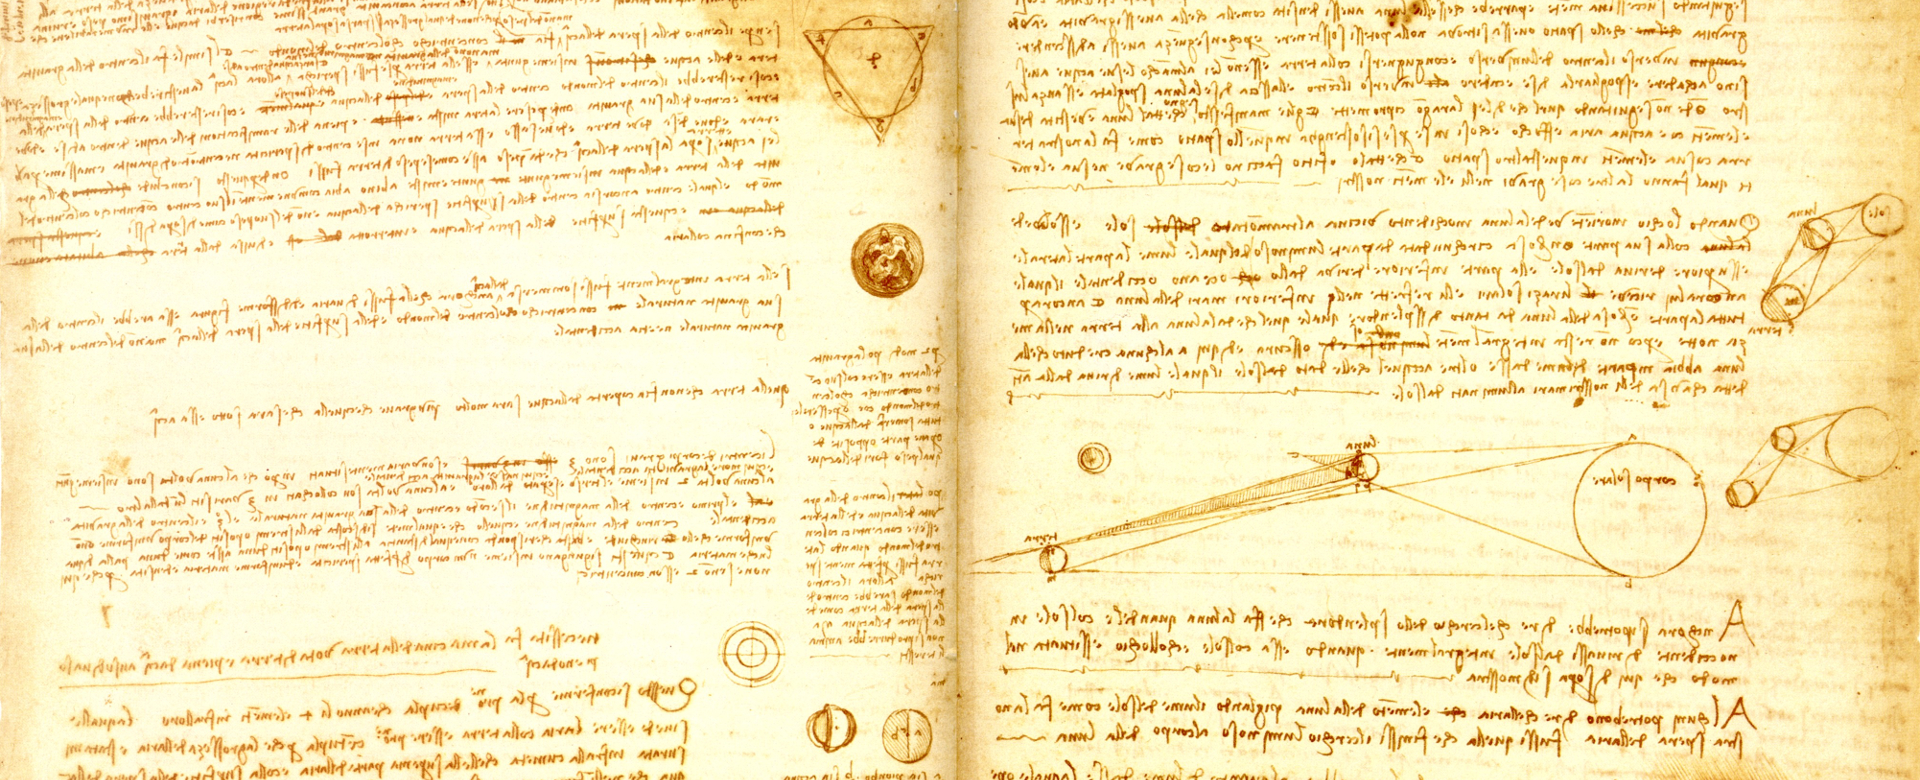 The Leicester Code of Leonardo da Vinci in Florence